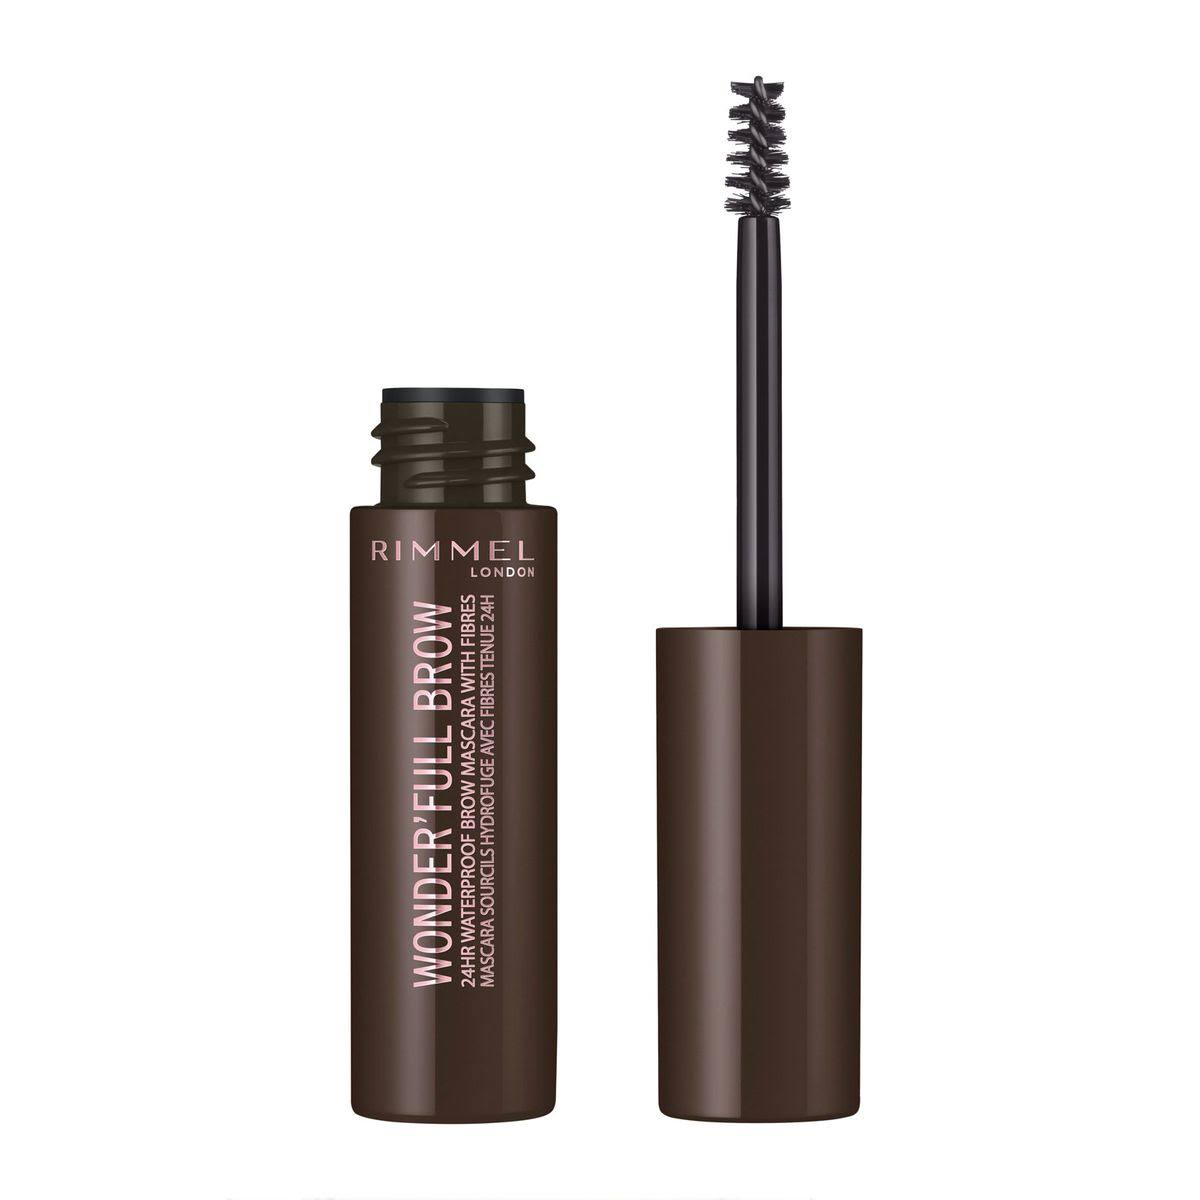 Rimmel Wonder Full 24 Hour Brow Mascara - 003 Dark Brown